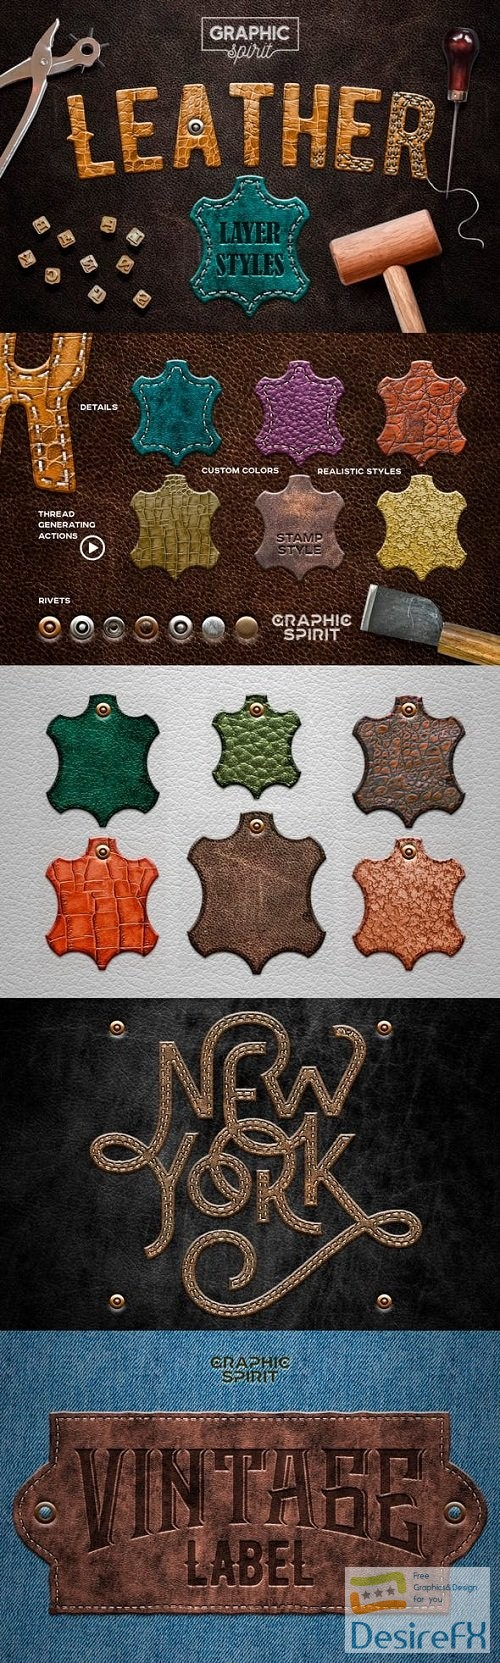 photoshop - Leather Layer Styles For Adobe Photoshop  - 23631291